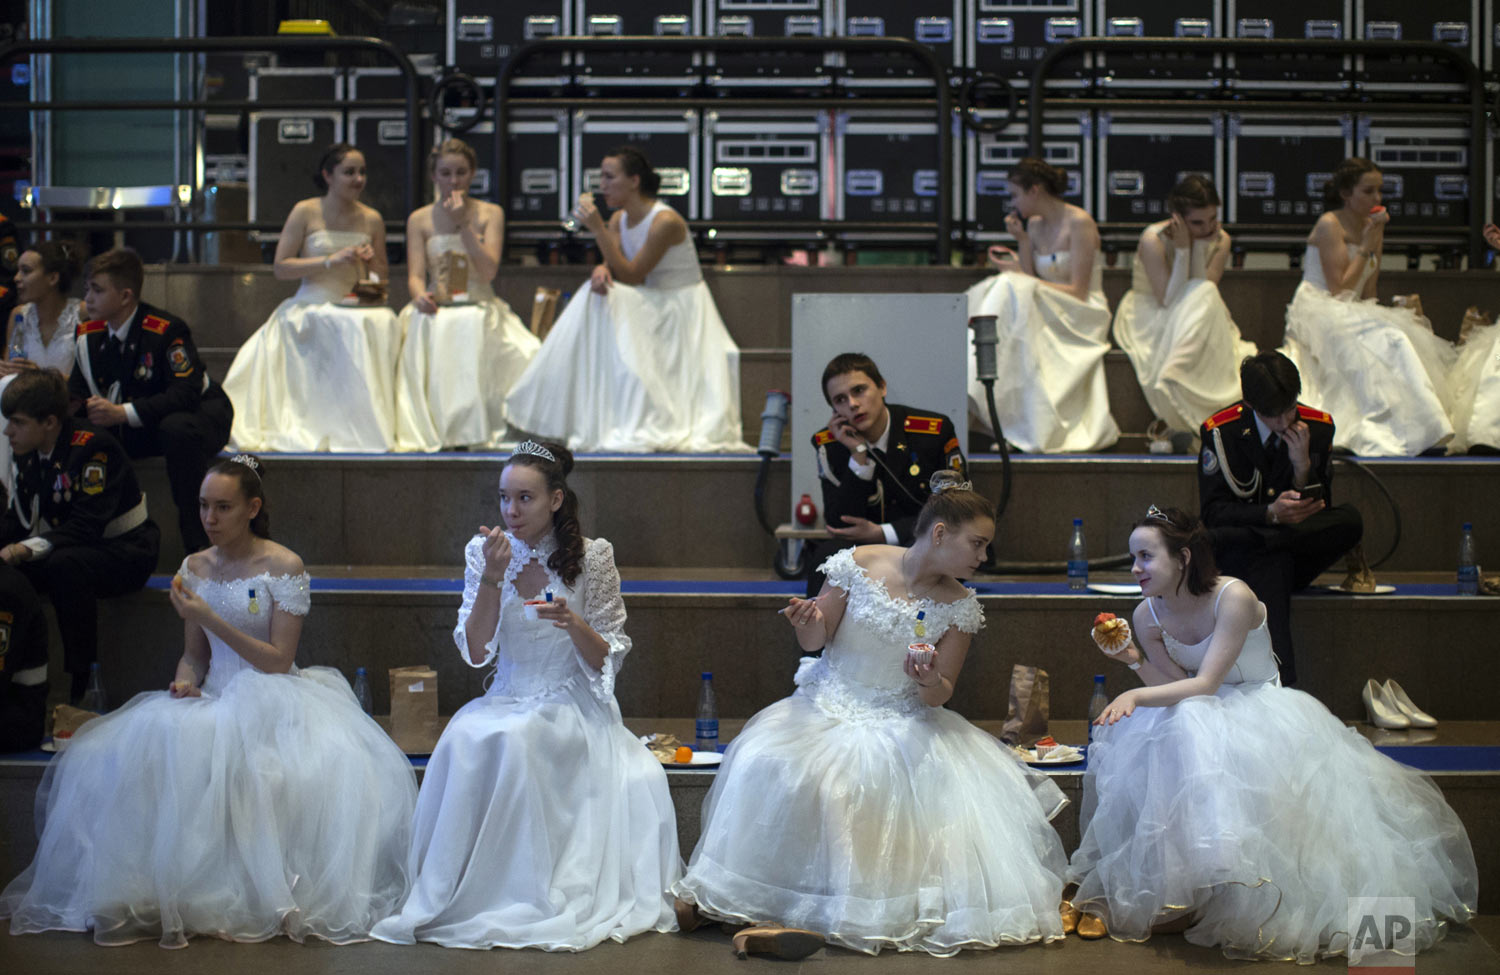 Military school students sit backstage during an annual ball in Moscow, Russia, Tuesday, Dec. 11, 2018. In a revival of a czarist tradition, more than 1,000 students both from military and general schools travelled to the capital from across the country to participate. (AP Photo/Alexander Zemlianichenko)